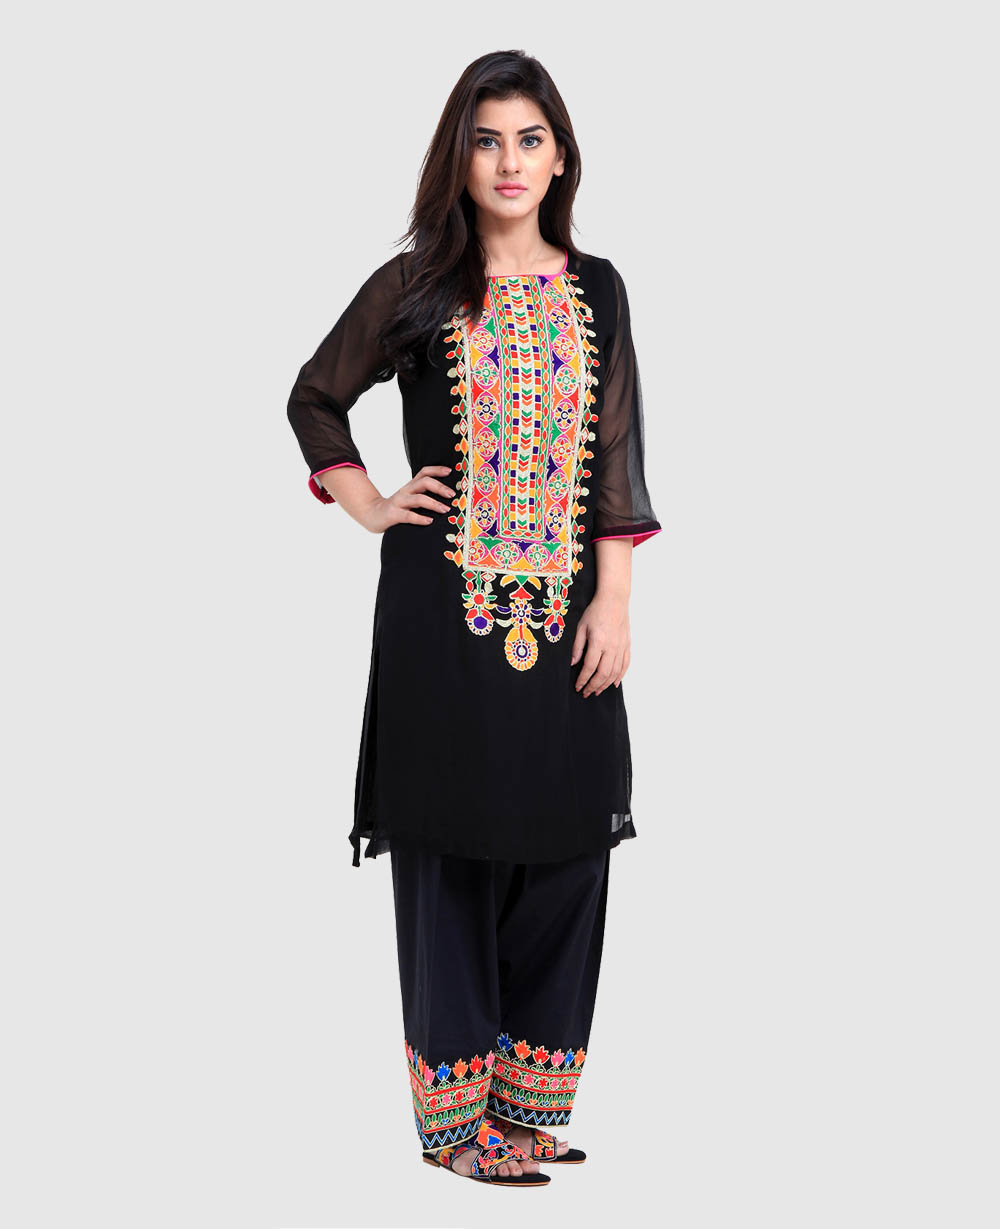 Beautiful Latest Eid Hairstyles Collection 2017 2018 For Women: Rang Ja Trendy Eid Colorful Kurti Dresses 2017-2018 Collection